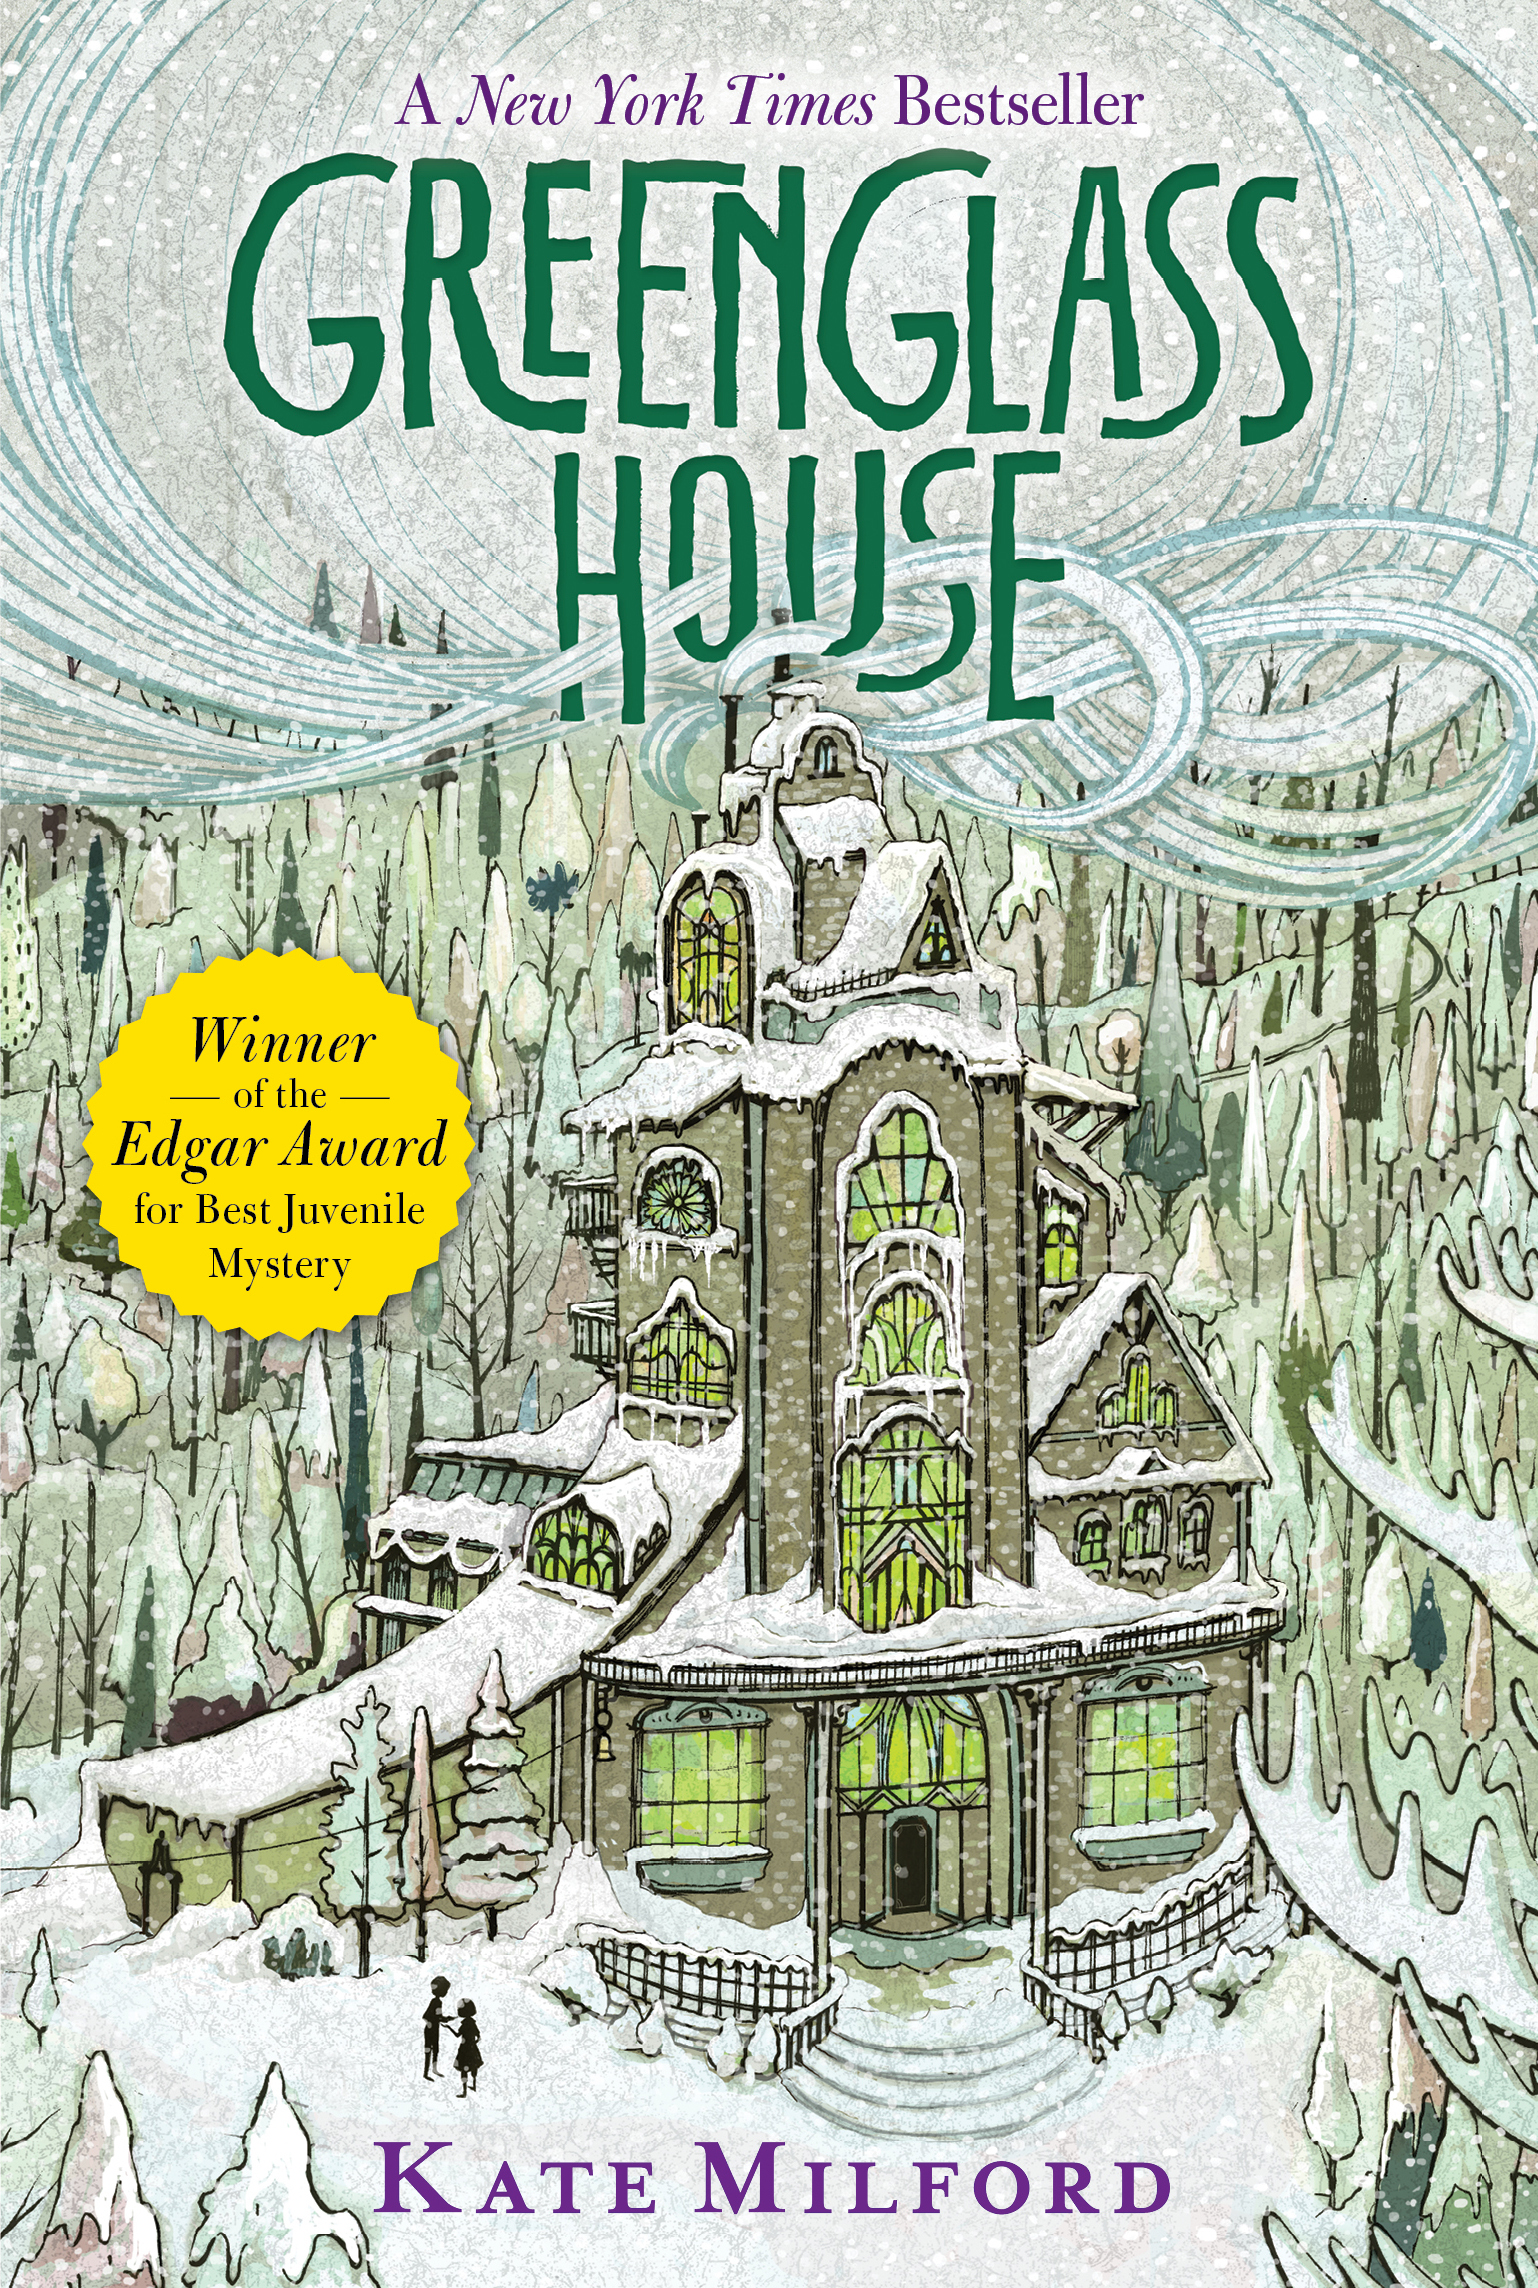 Erica's Pick of the Week: Greenglass House